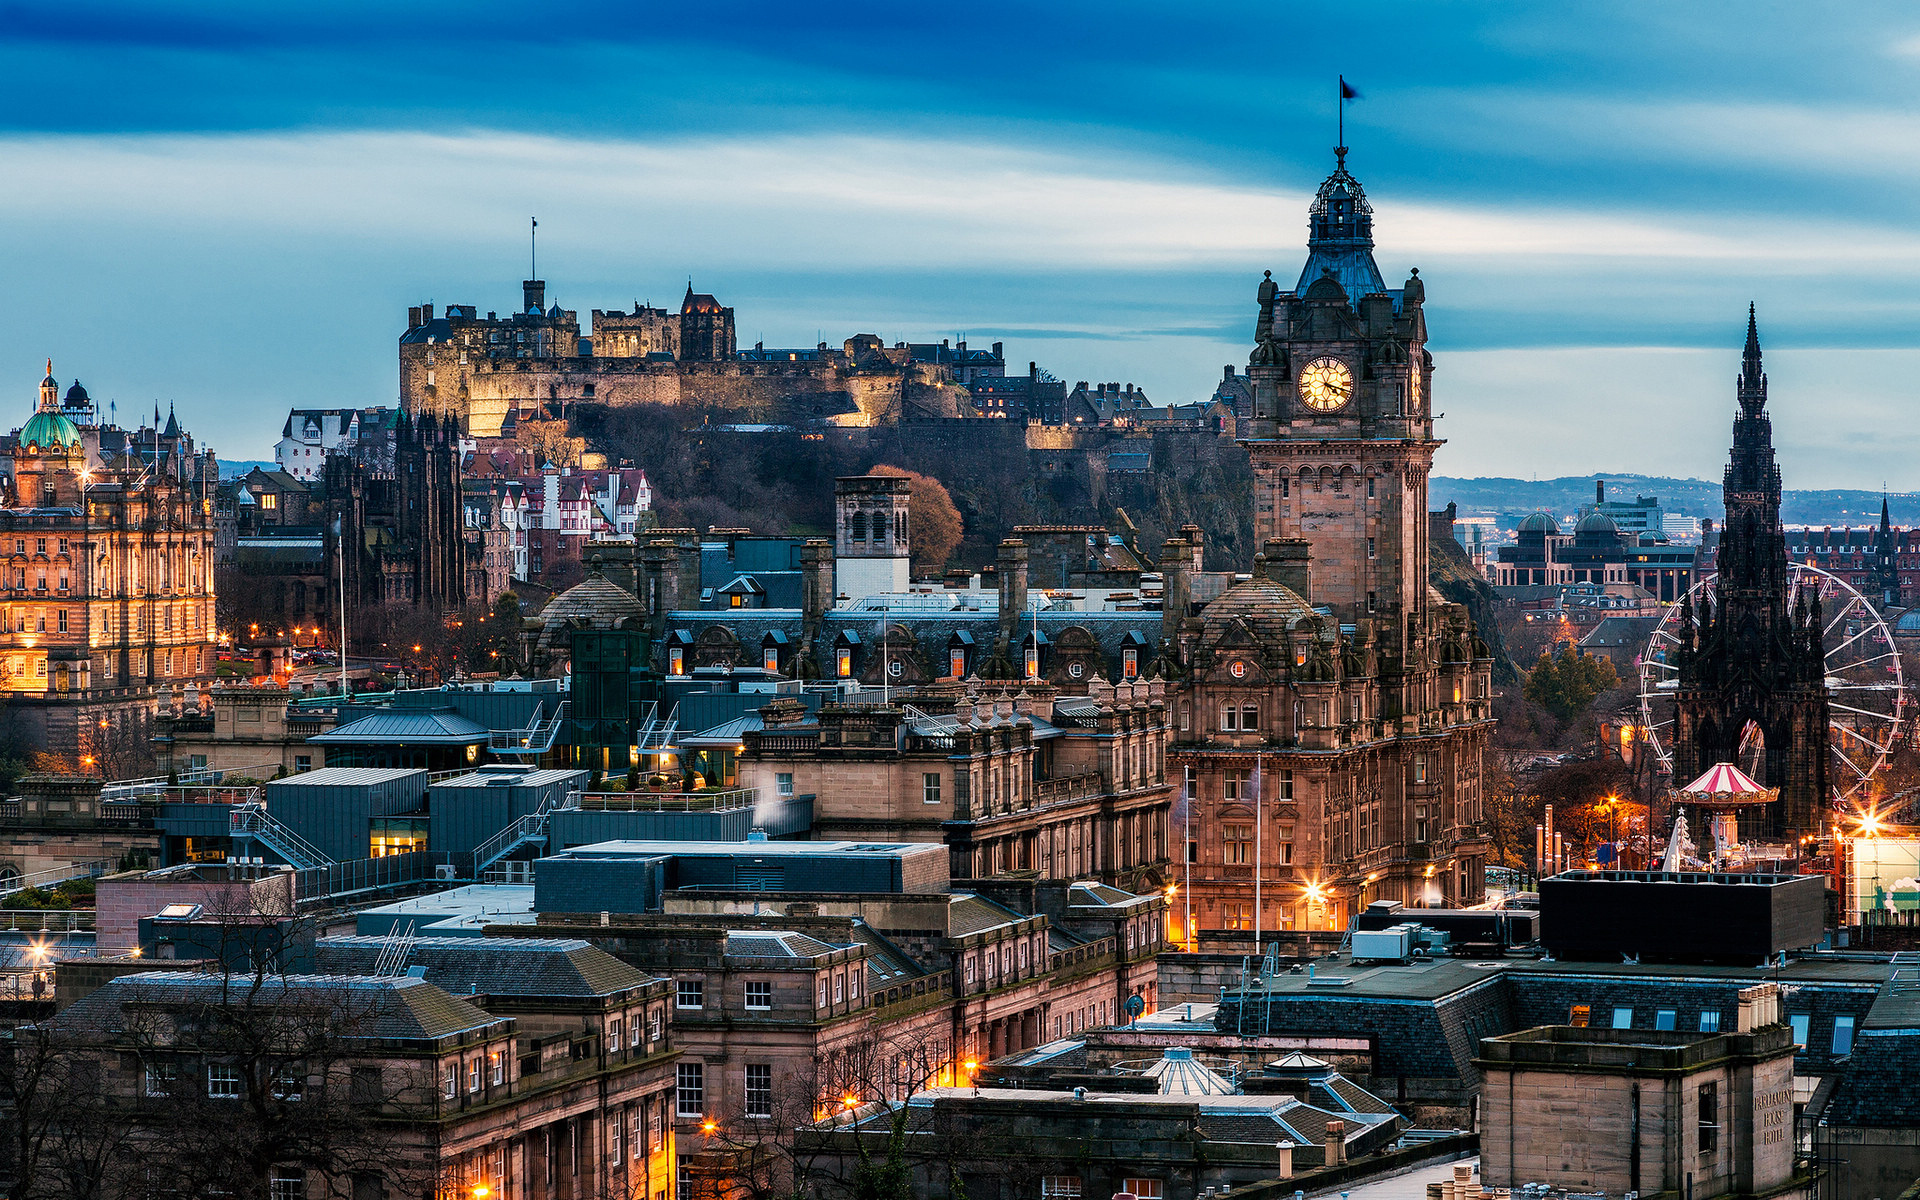 edinburgh scotland wallpaper - photo #2